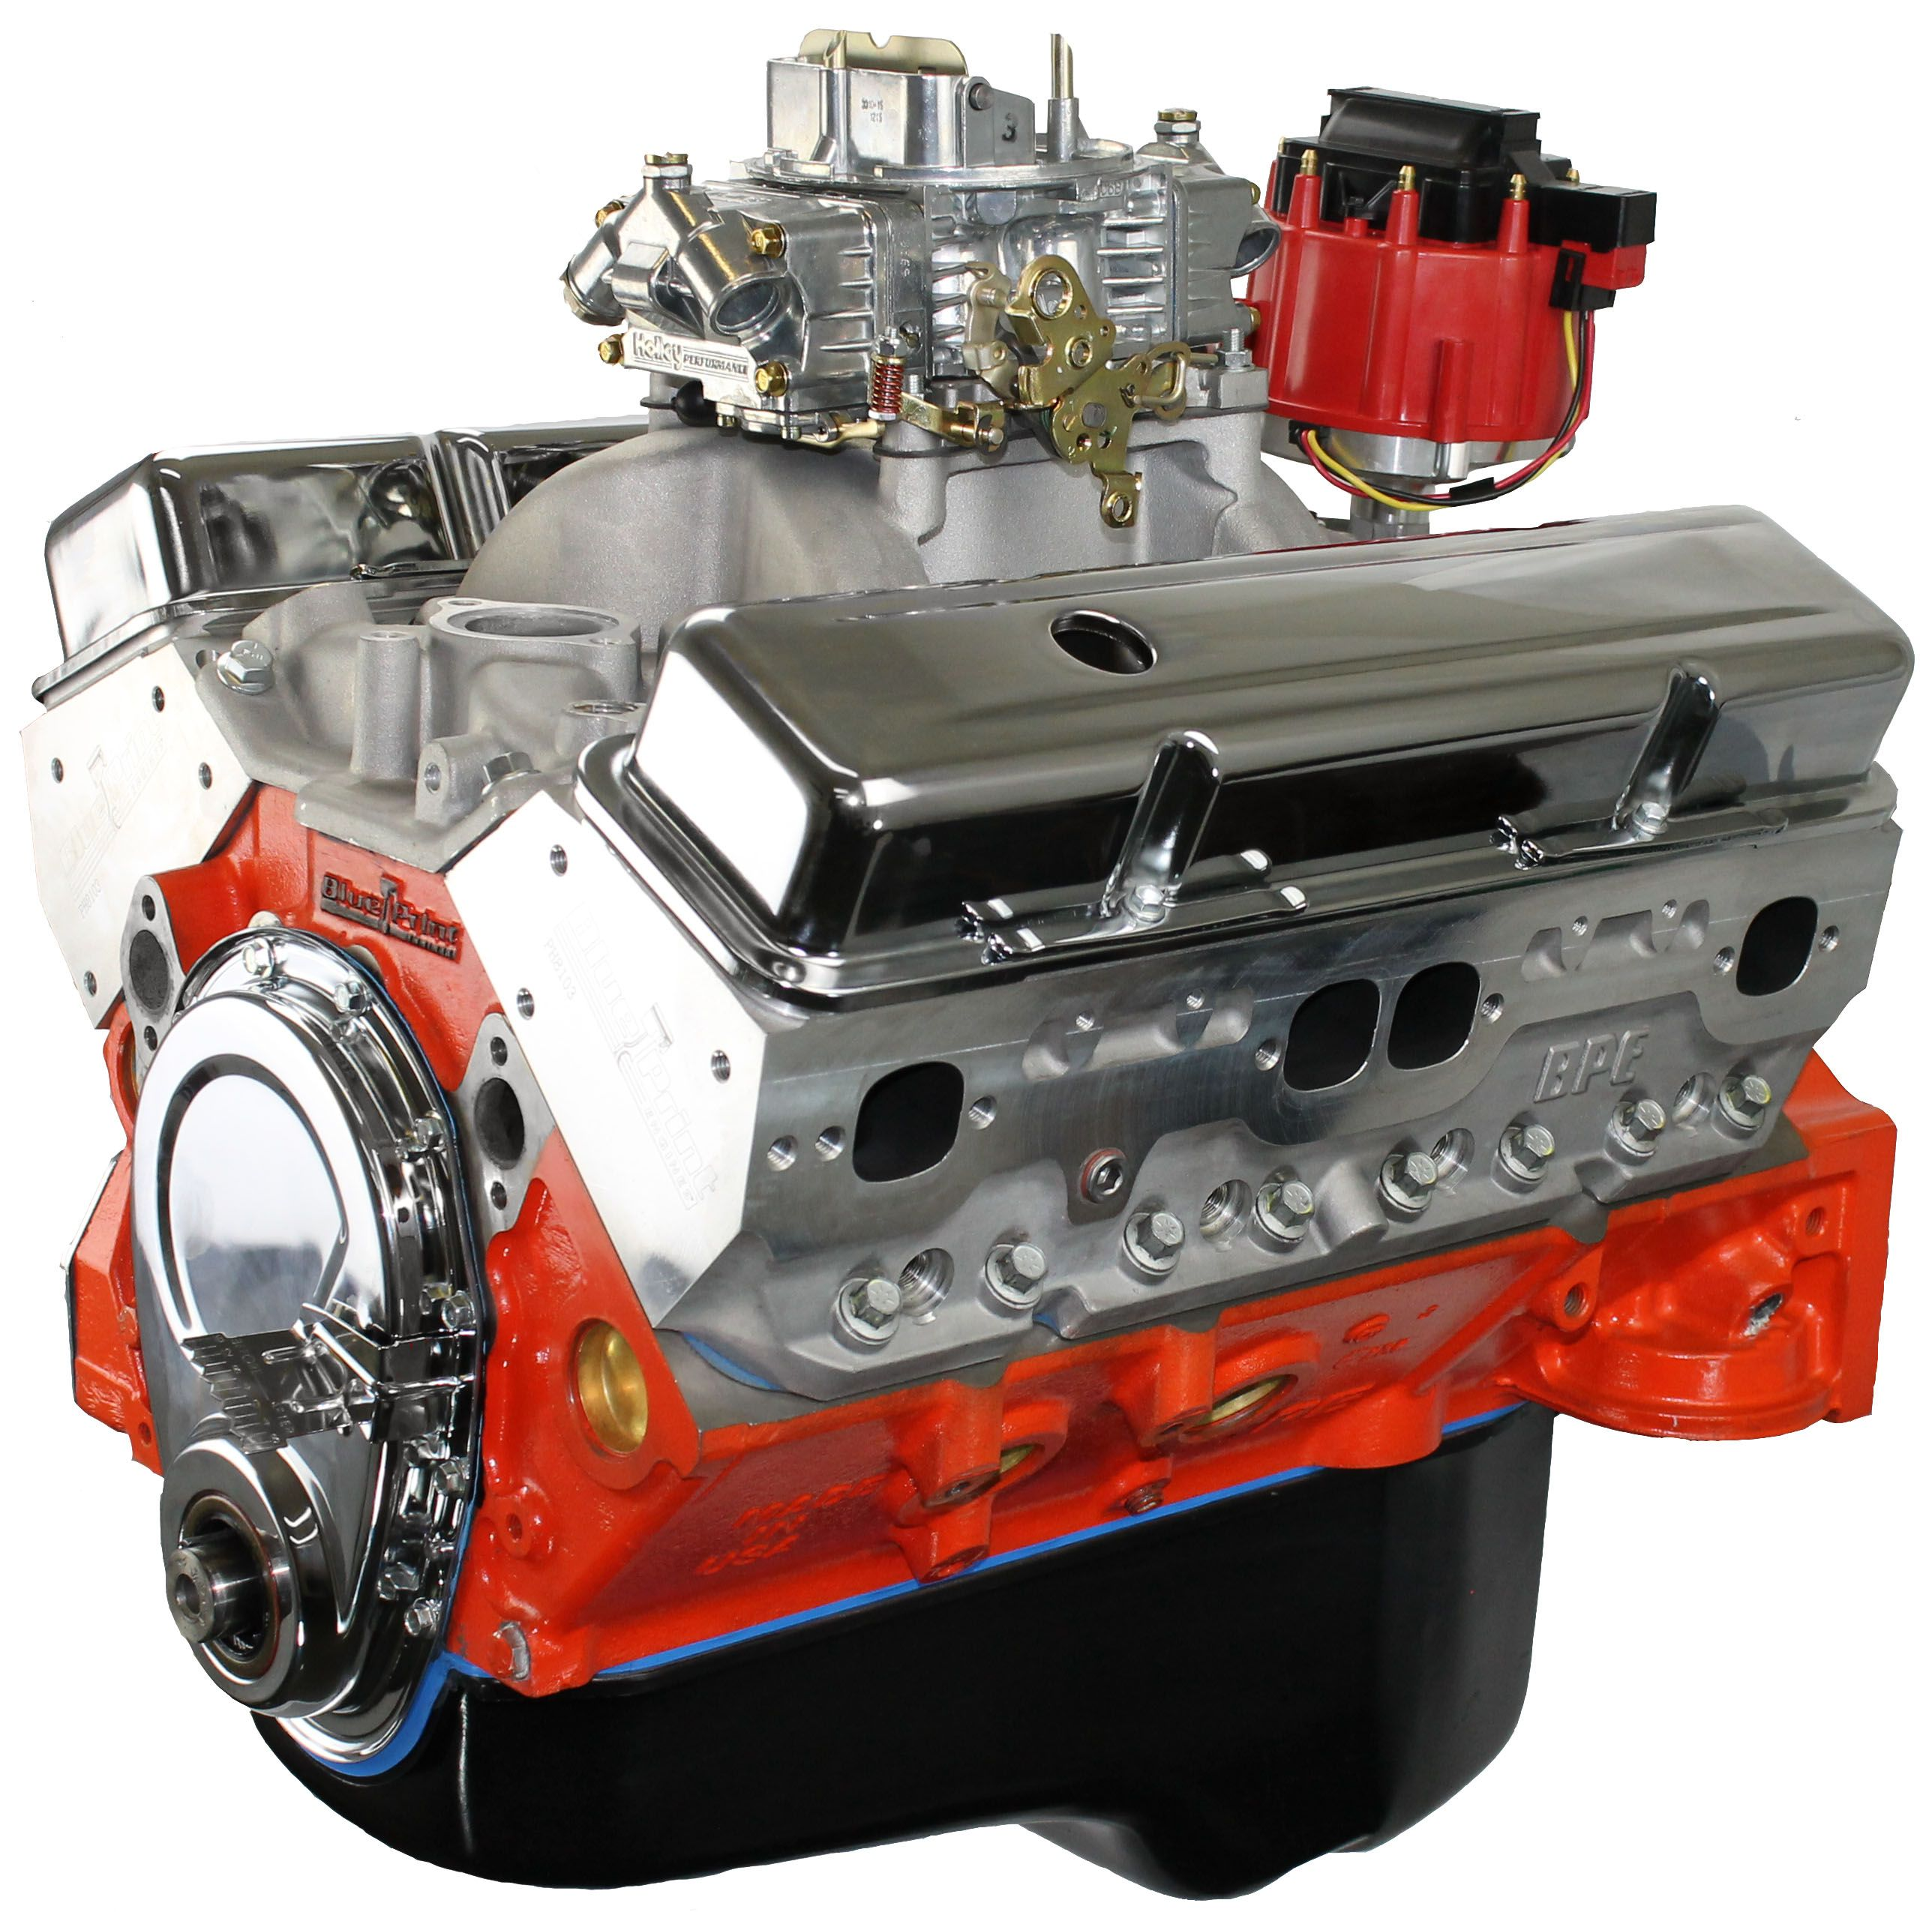 400ci stroker crate engine small block gm style dressed blueprint engines bp4002ctc1 508 hp473 torque features forged crank forged pistons roller camshaft and aluminum heads malvernweather Choice Image